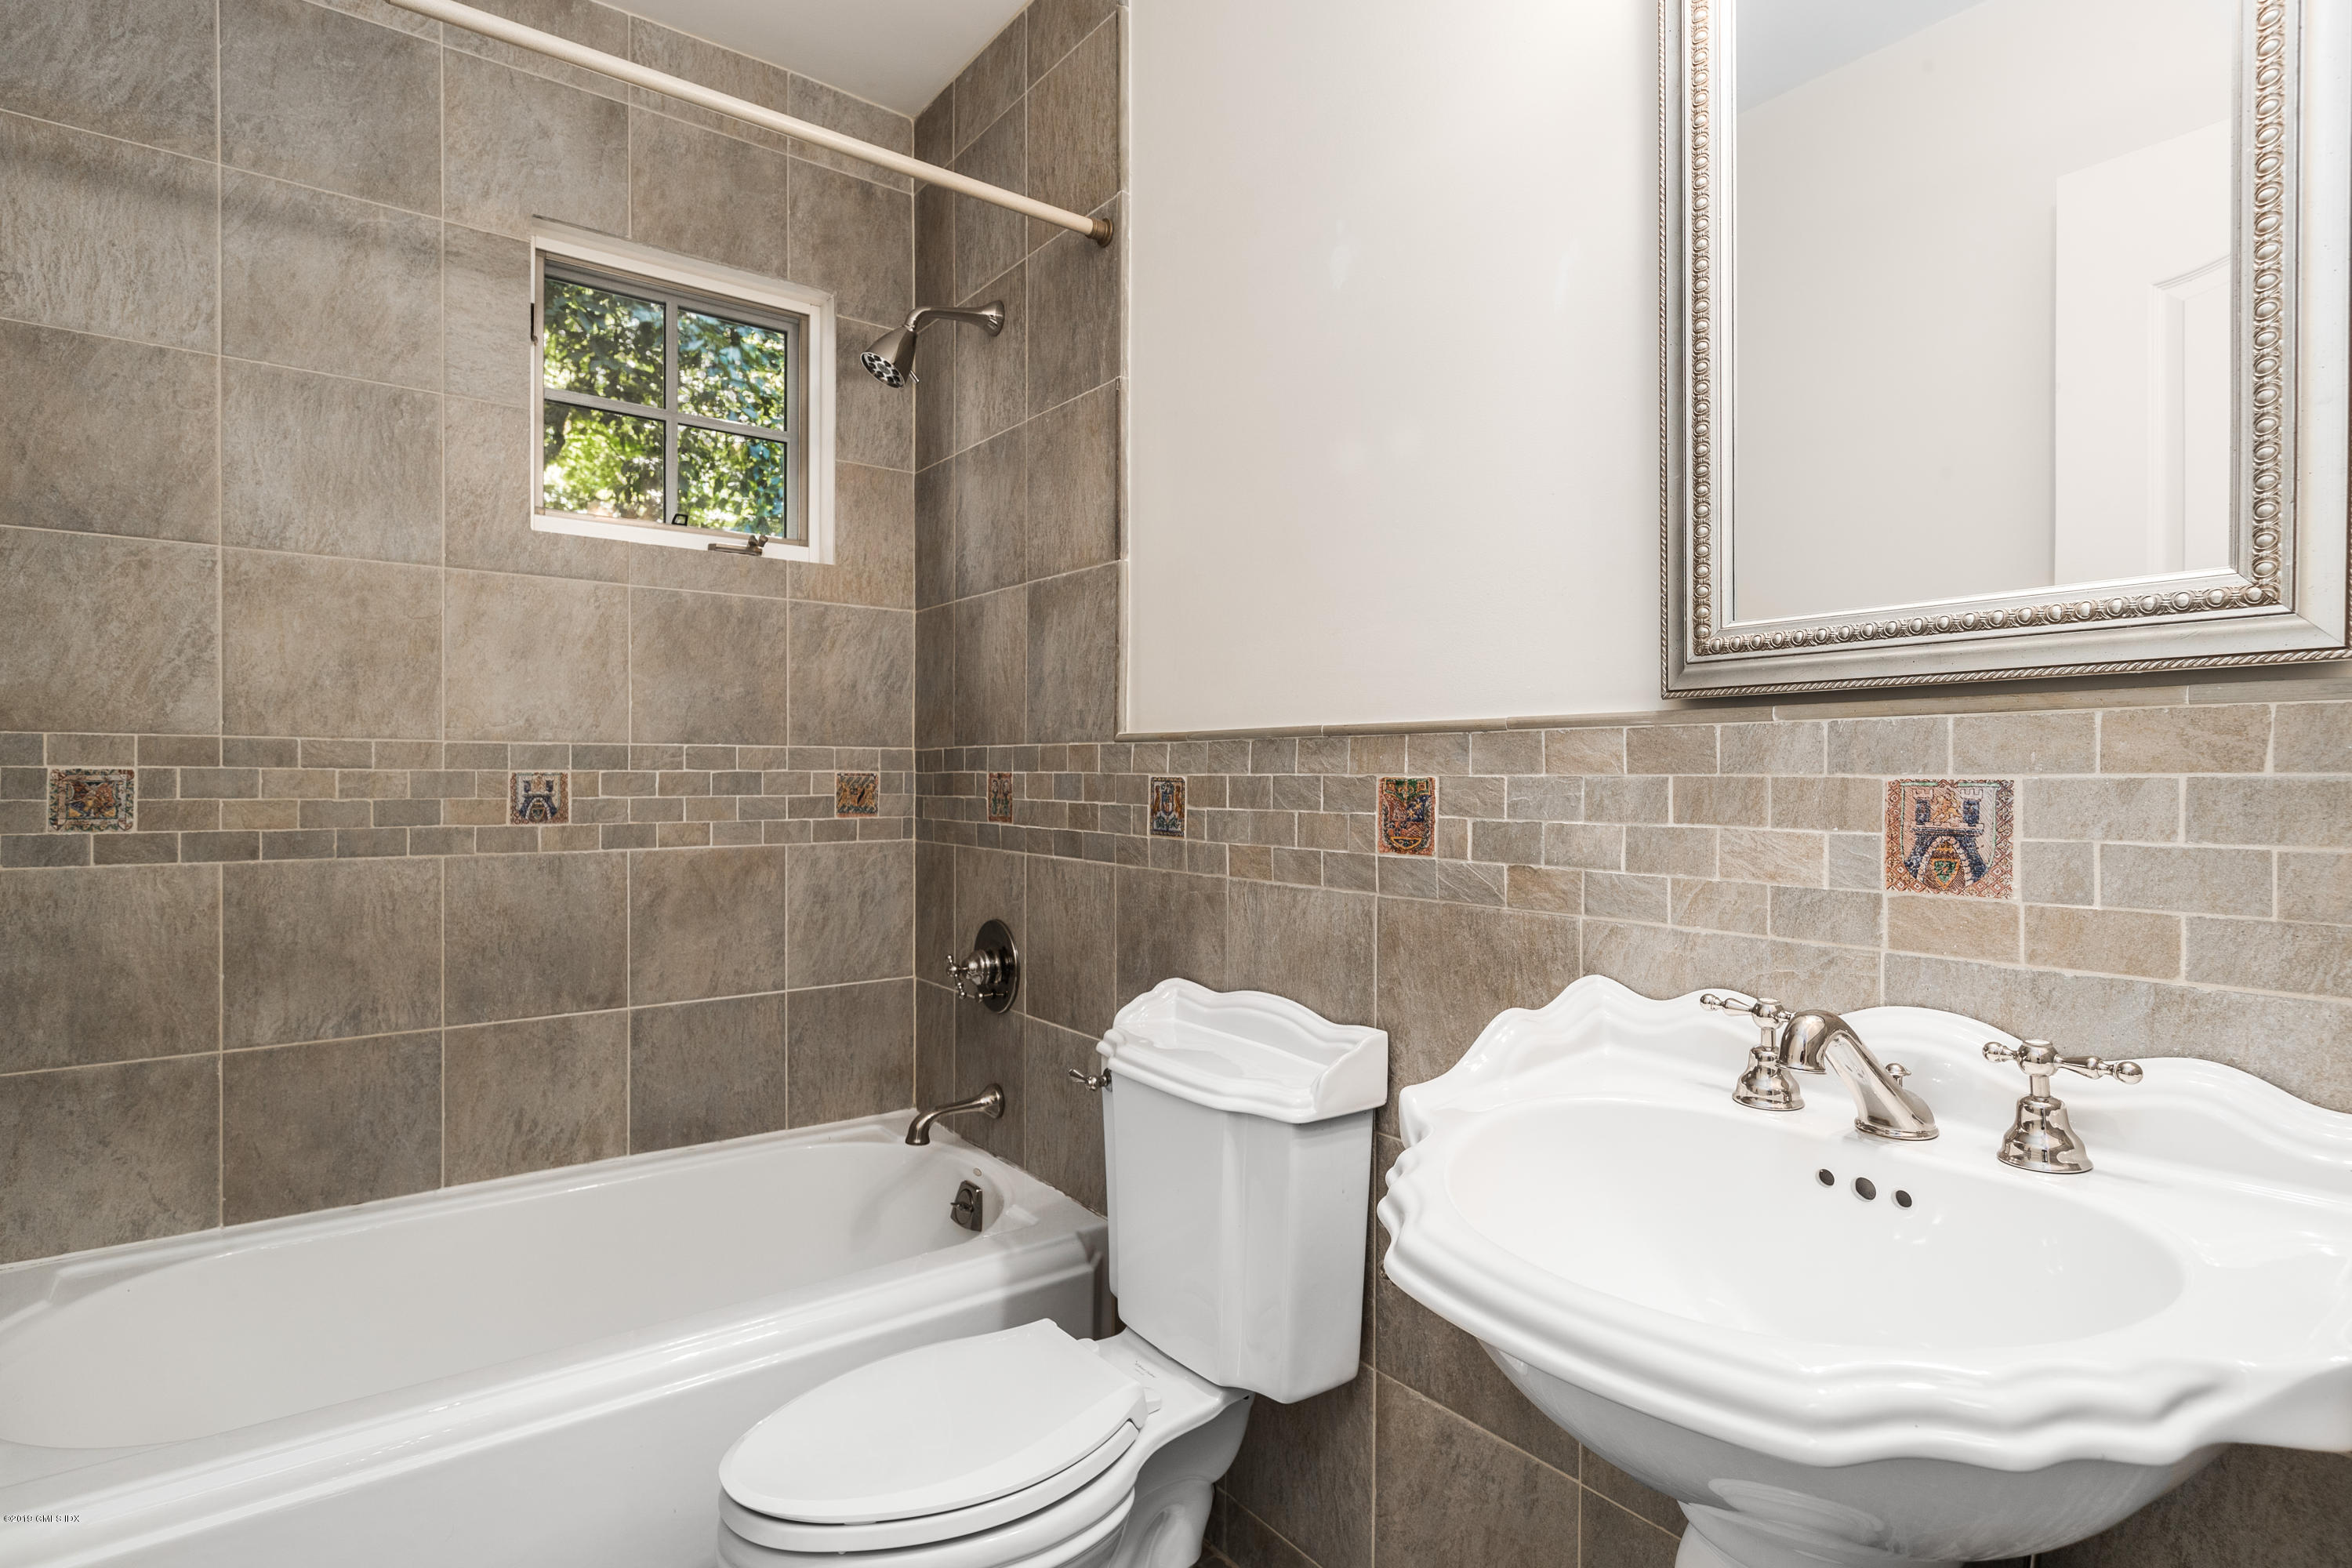 55 Orchard Drive, Greenwich, Connecticut 06830, 6 Bedrooms Bedrooms, ,5 BathroomsBathrooms,Single family,For sale,Orchard,110734